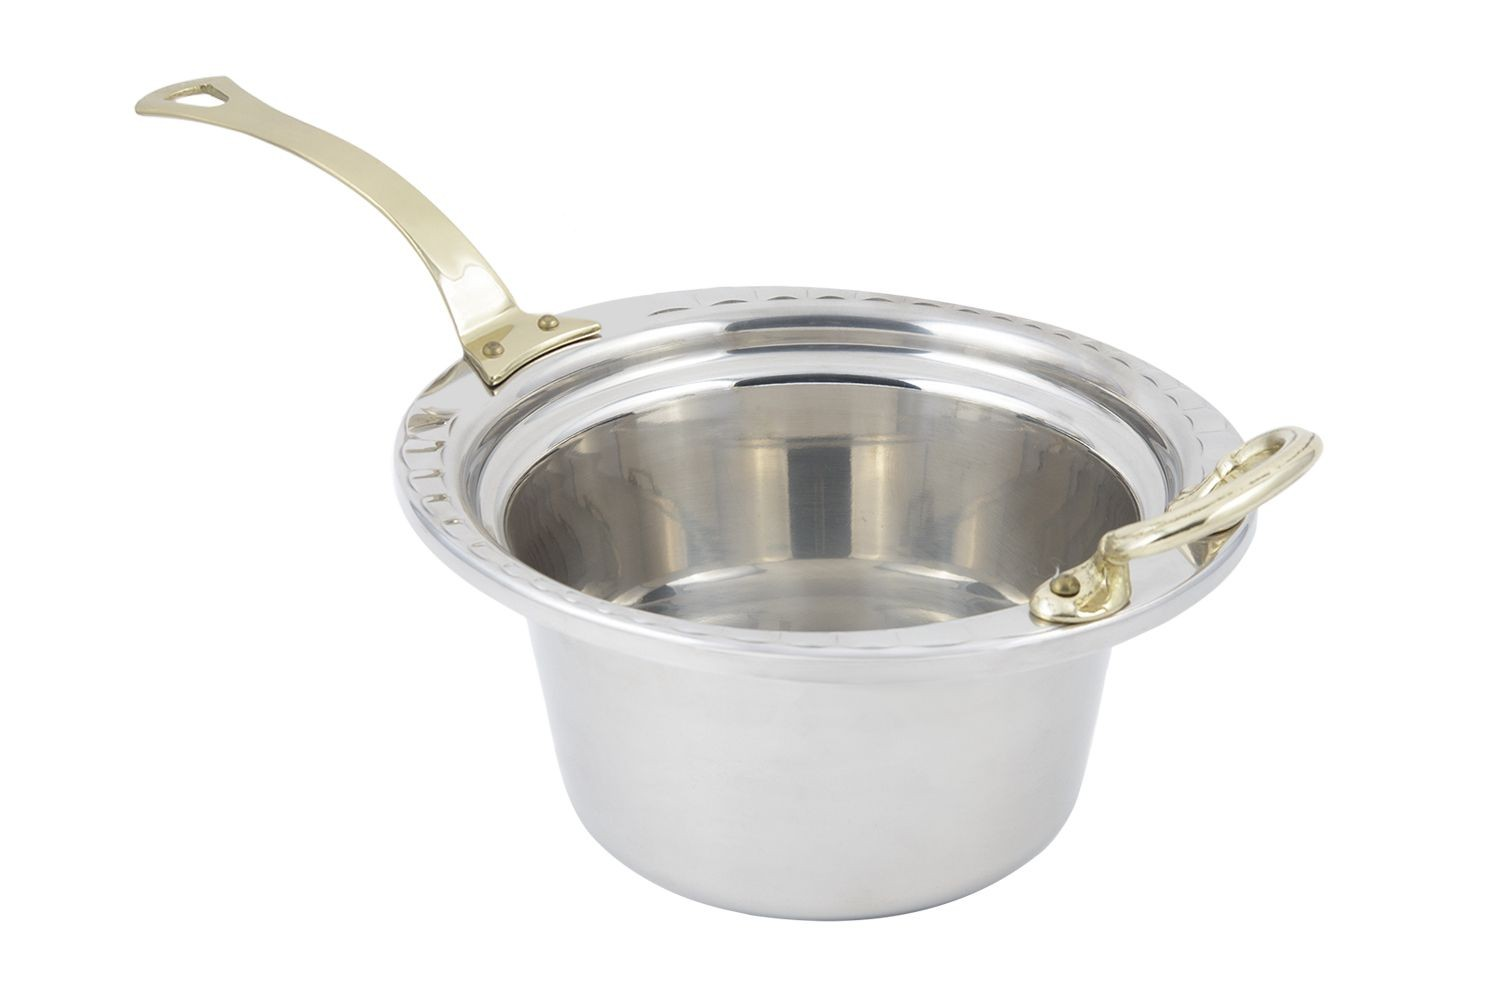 Bon Chef 5650HL Arches Design Casserole Dish with Long Brass Handle, 2 Qt.